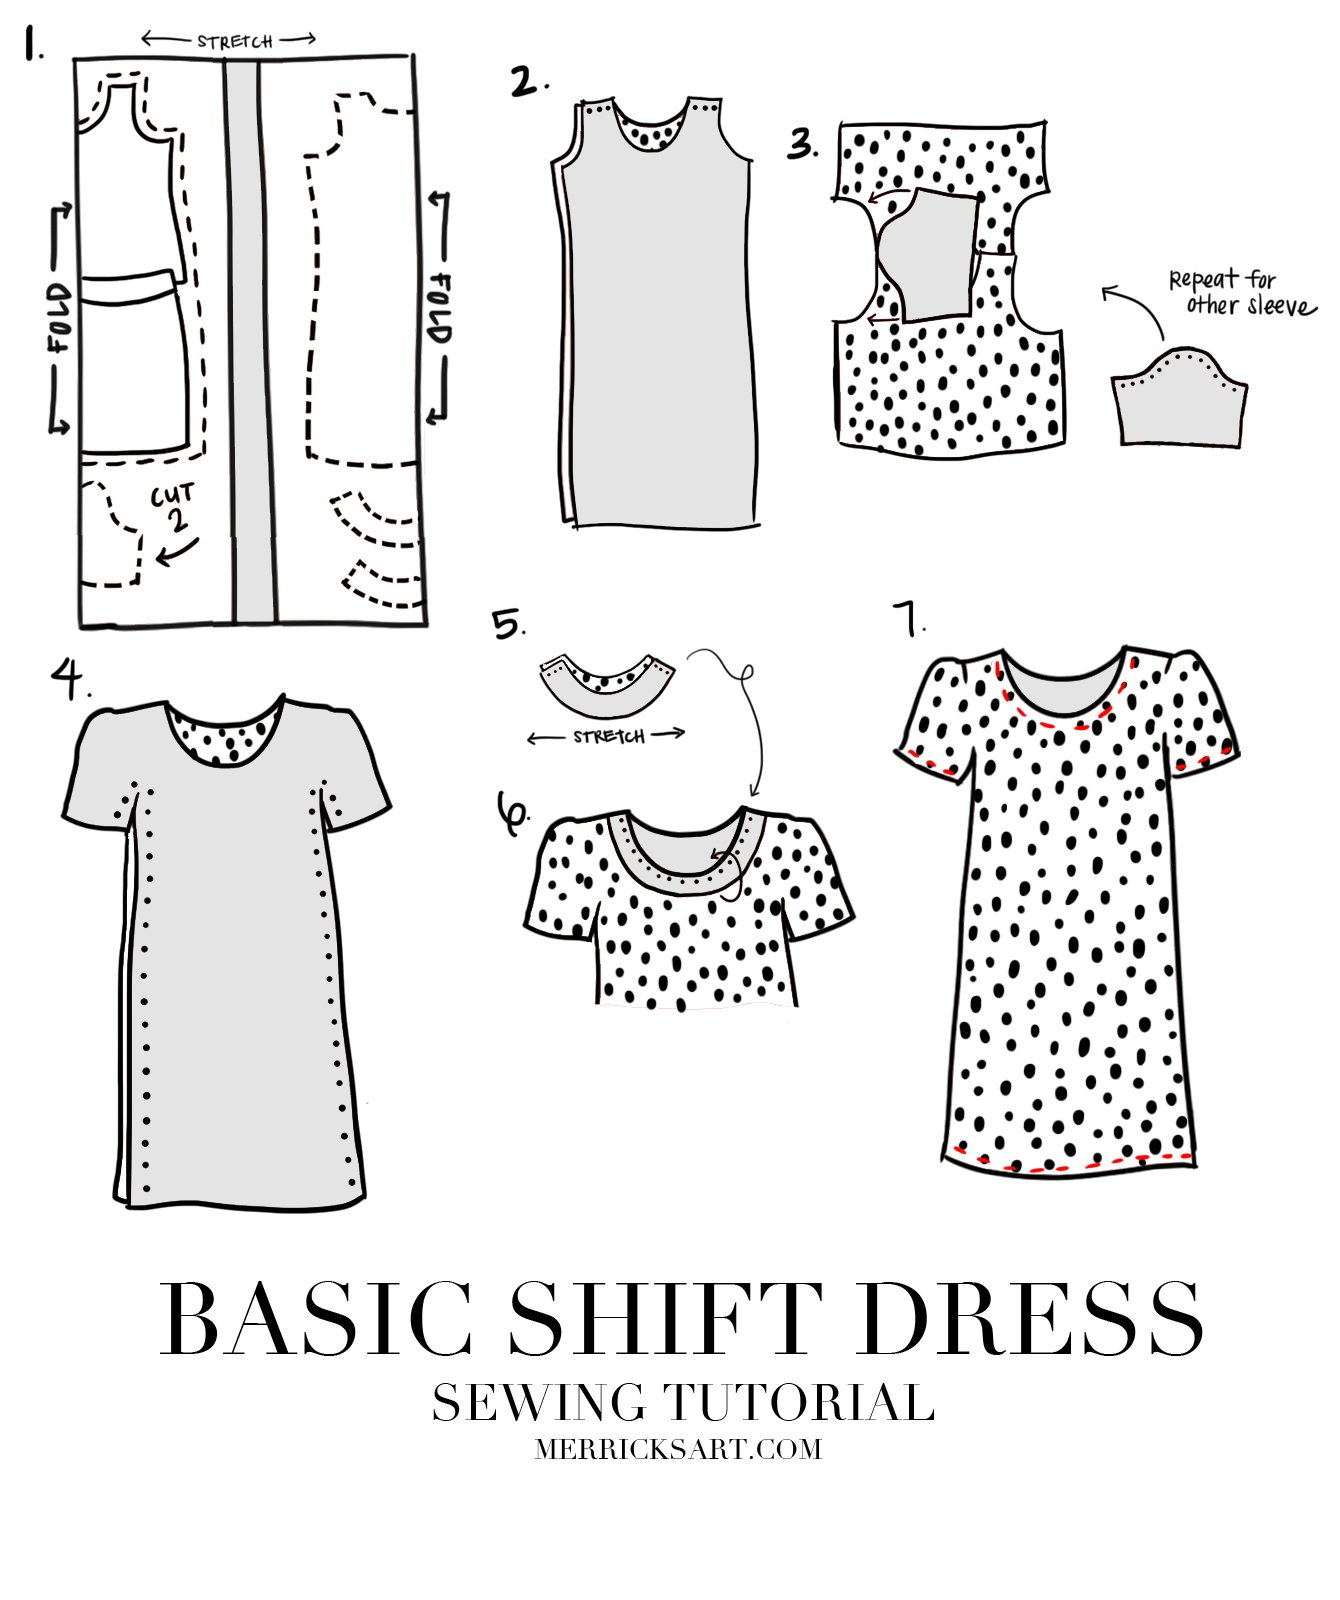 EASY SHIFT DRESS SEWING TUTORIAL | Merrick\'s Art | Merrick\'s Art